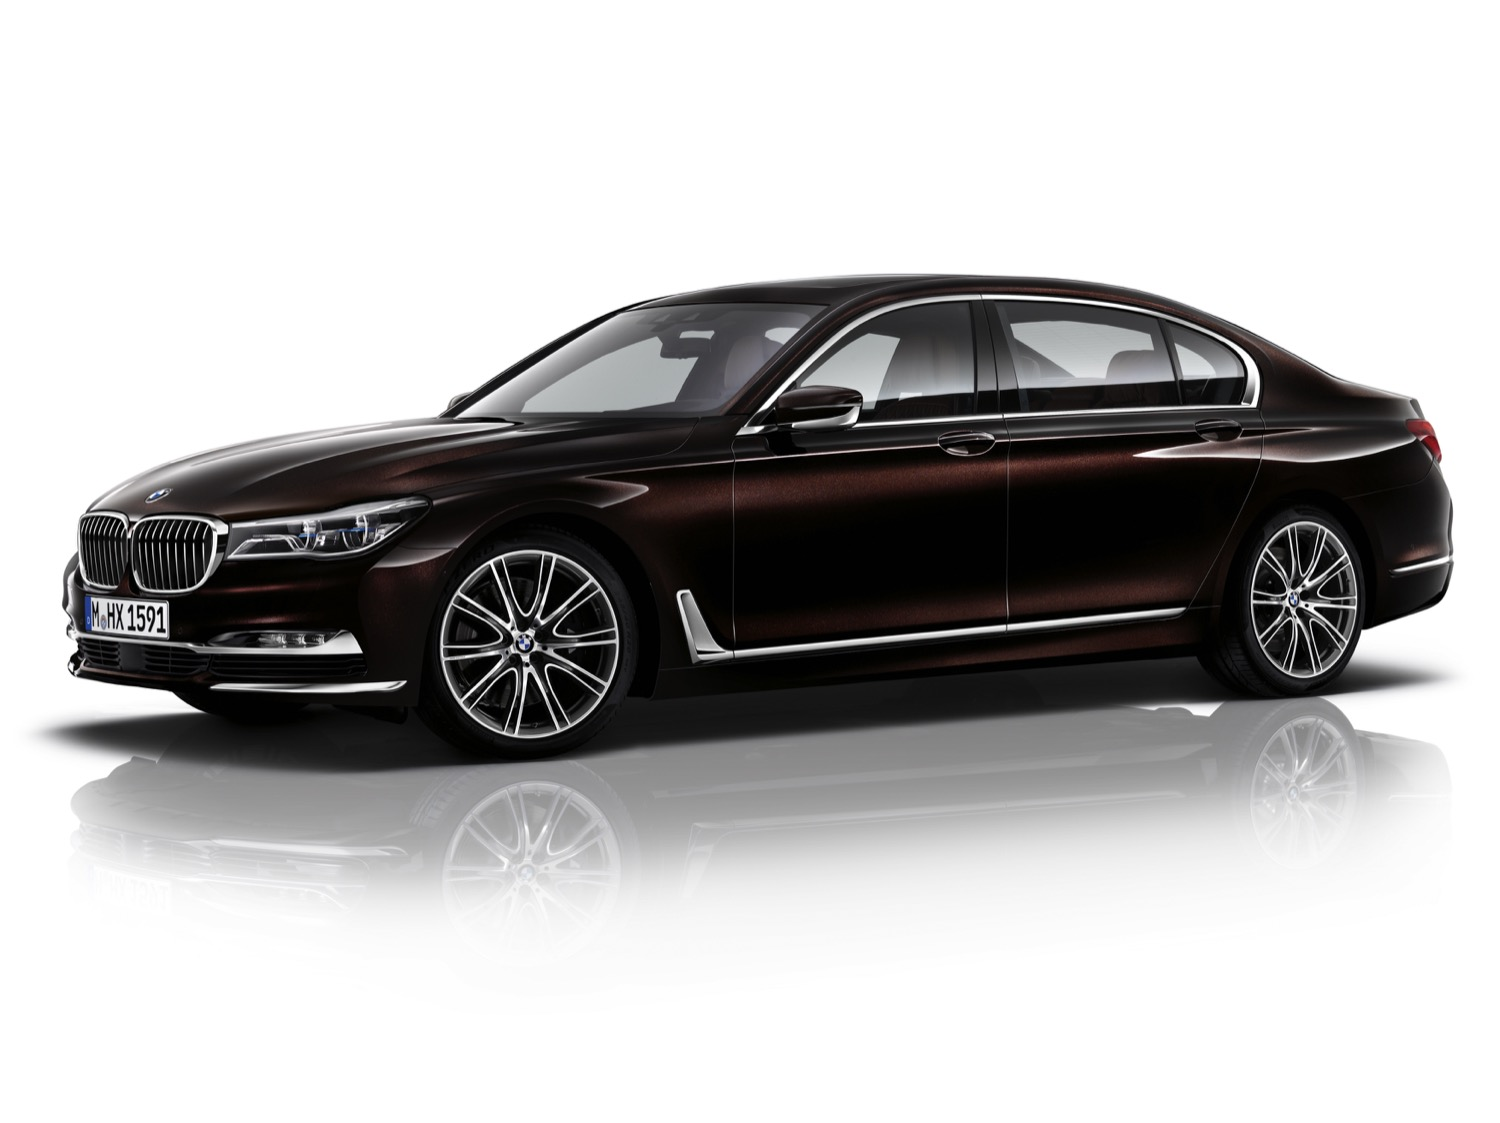 2016 Bmw 7 Series Motrolix